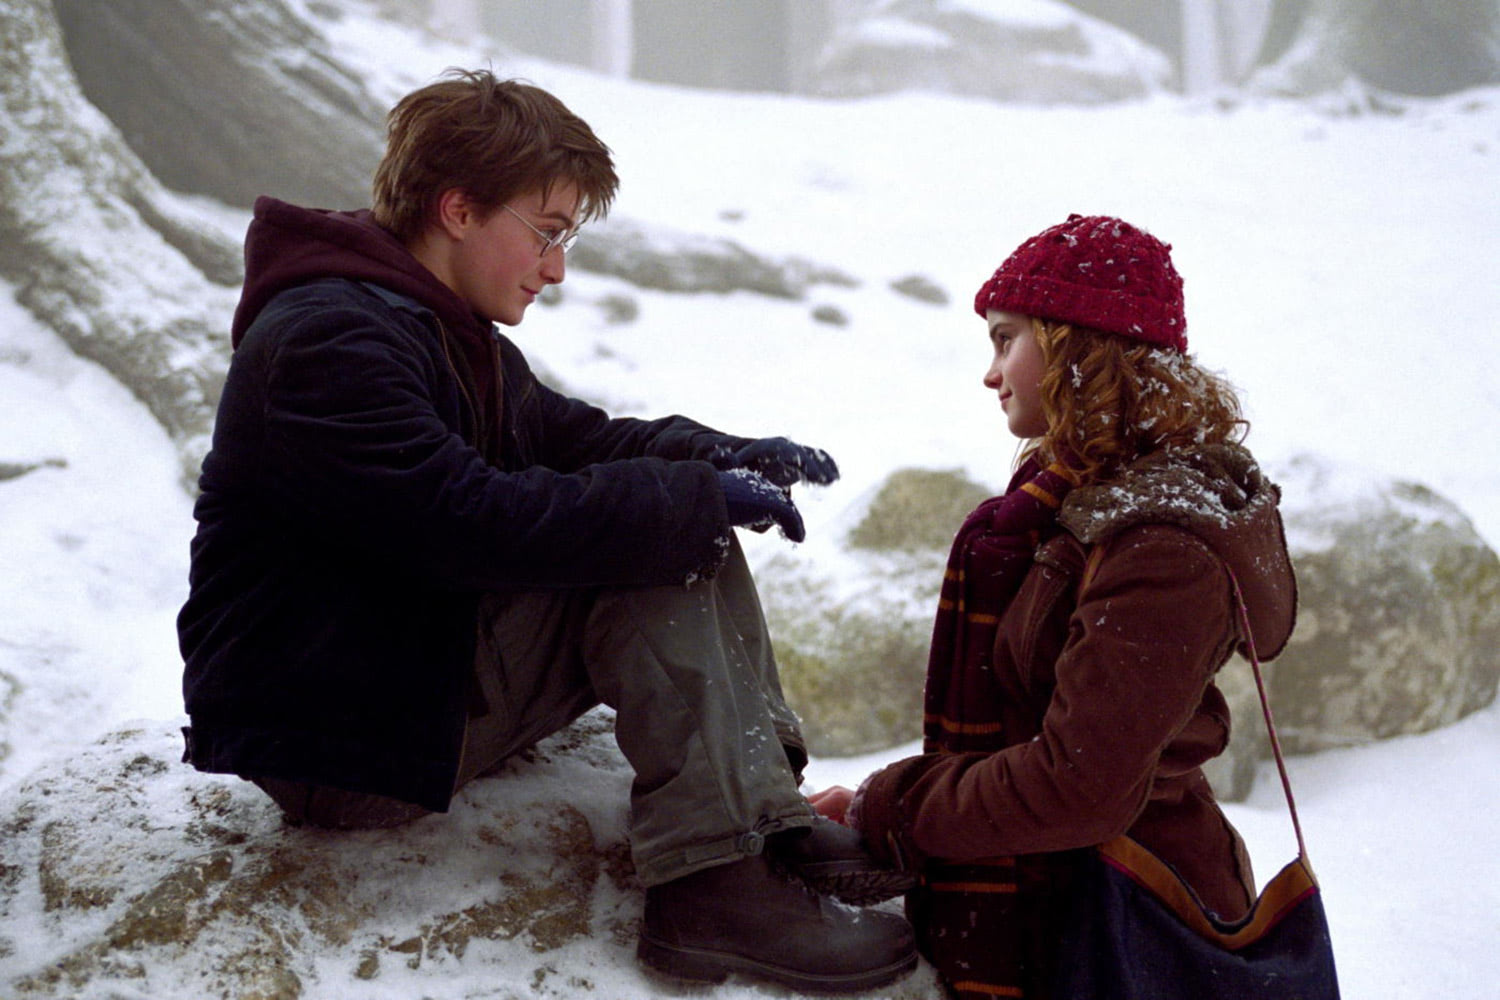 Hermione and Harry talk in the snow